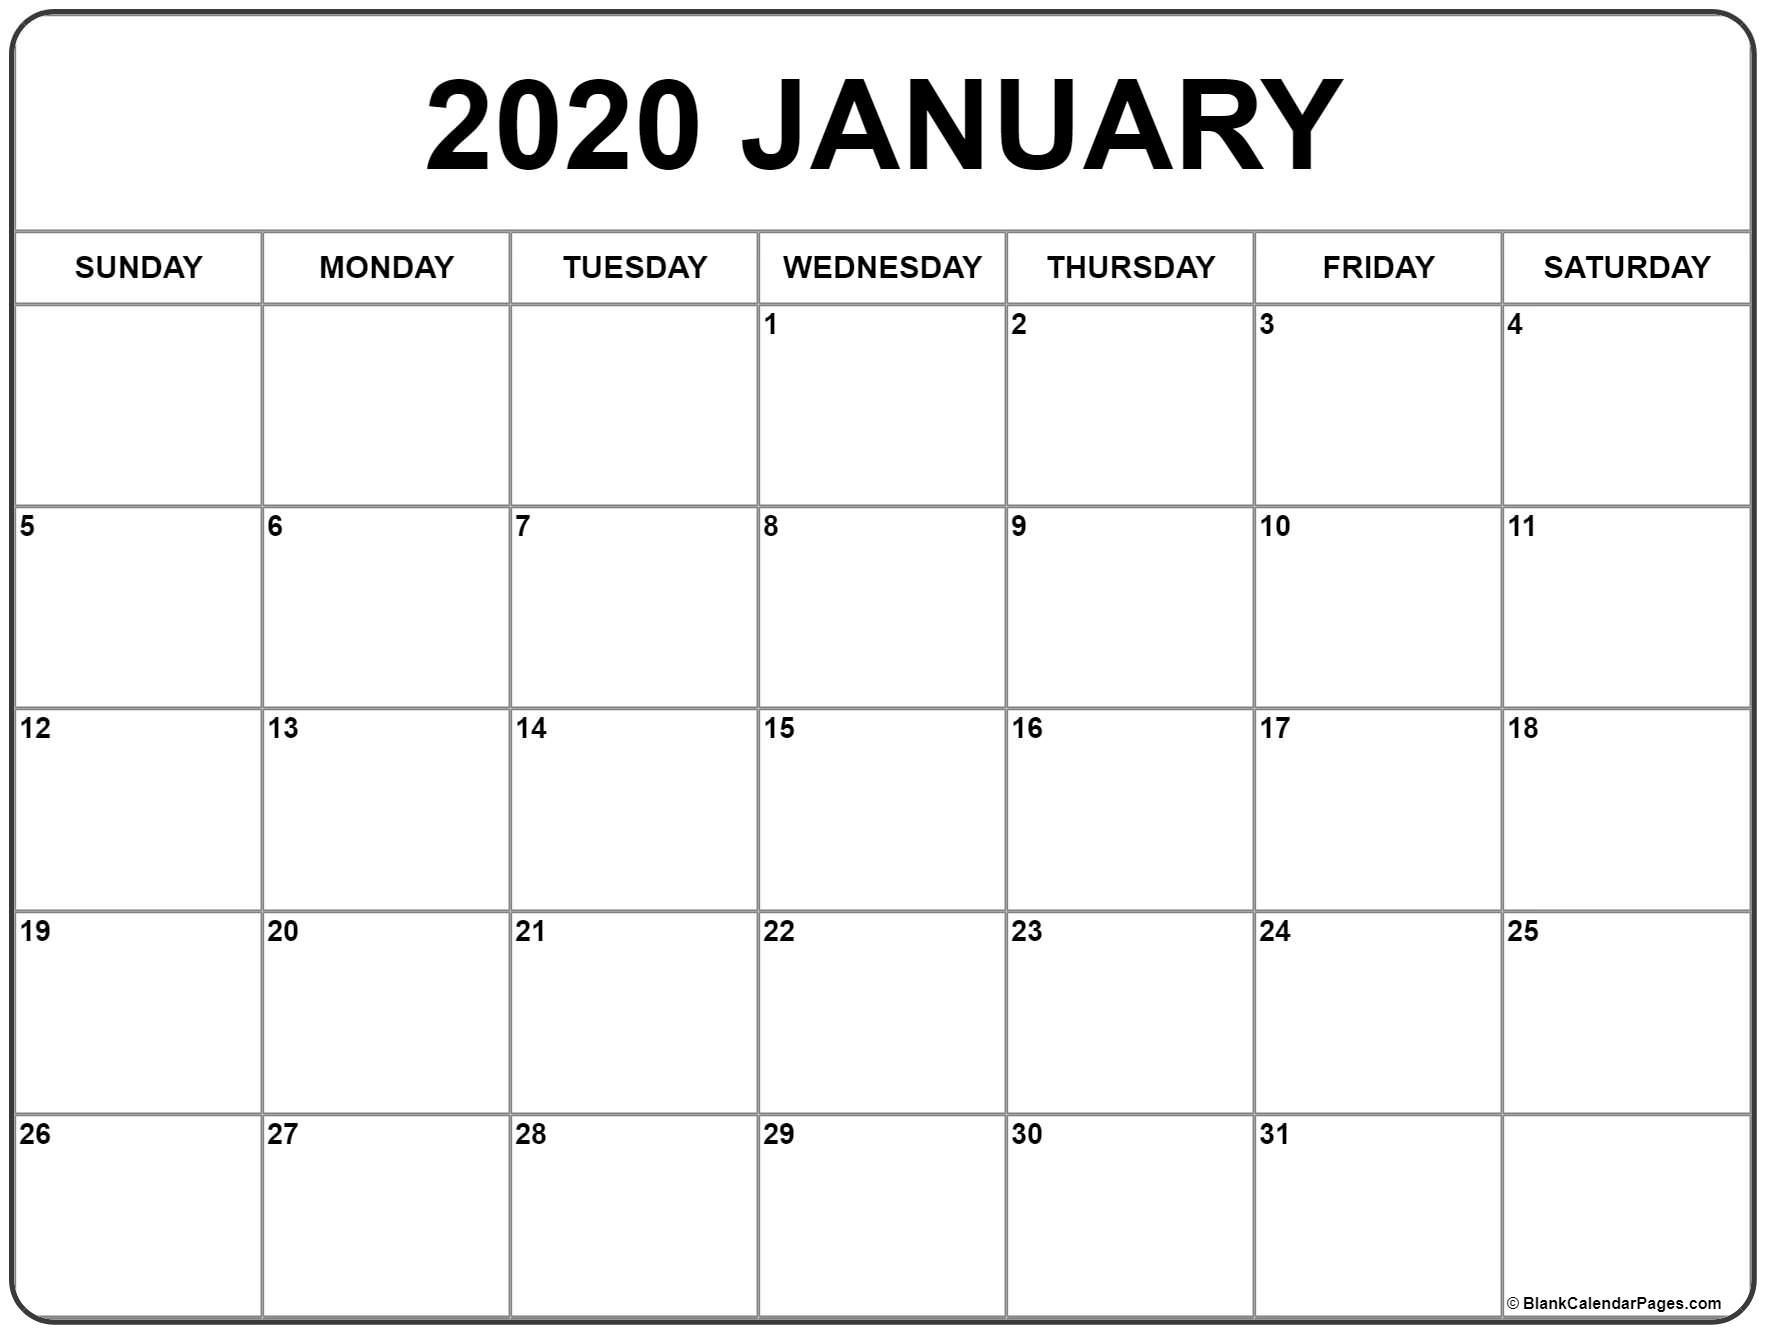 January 2020 Calendar | Free Printable Monthly Calendars-Printable Monthly Calendar June July August 2020